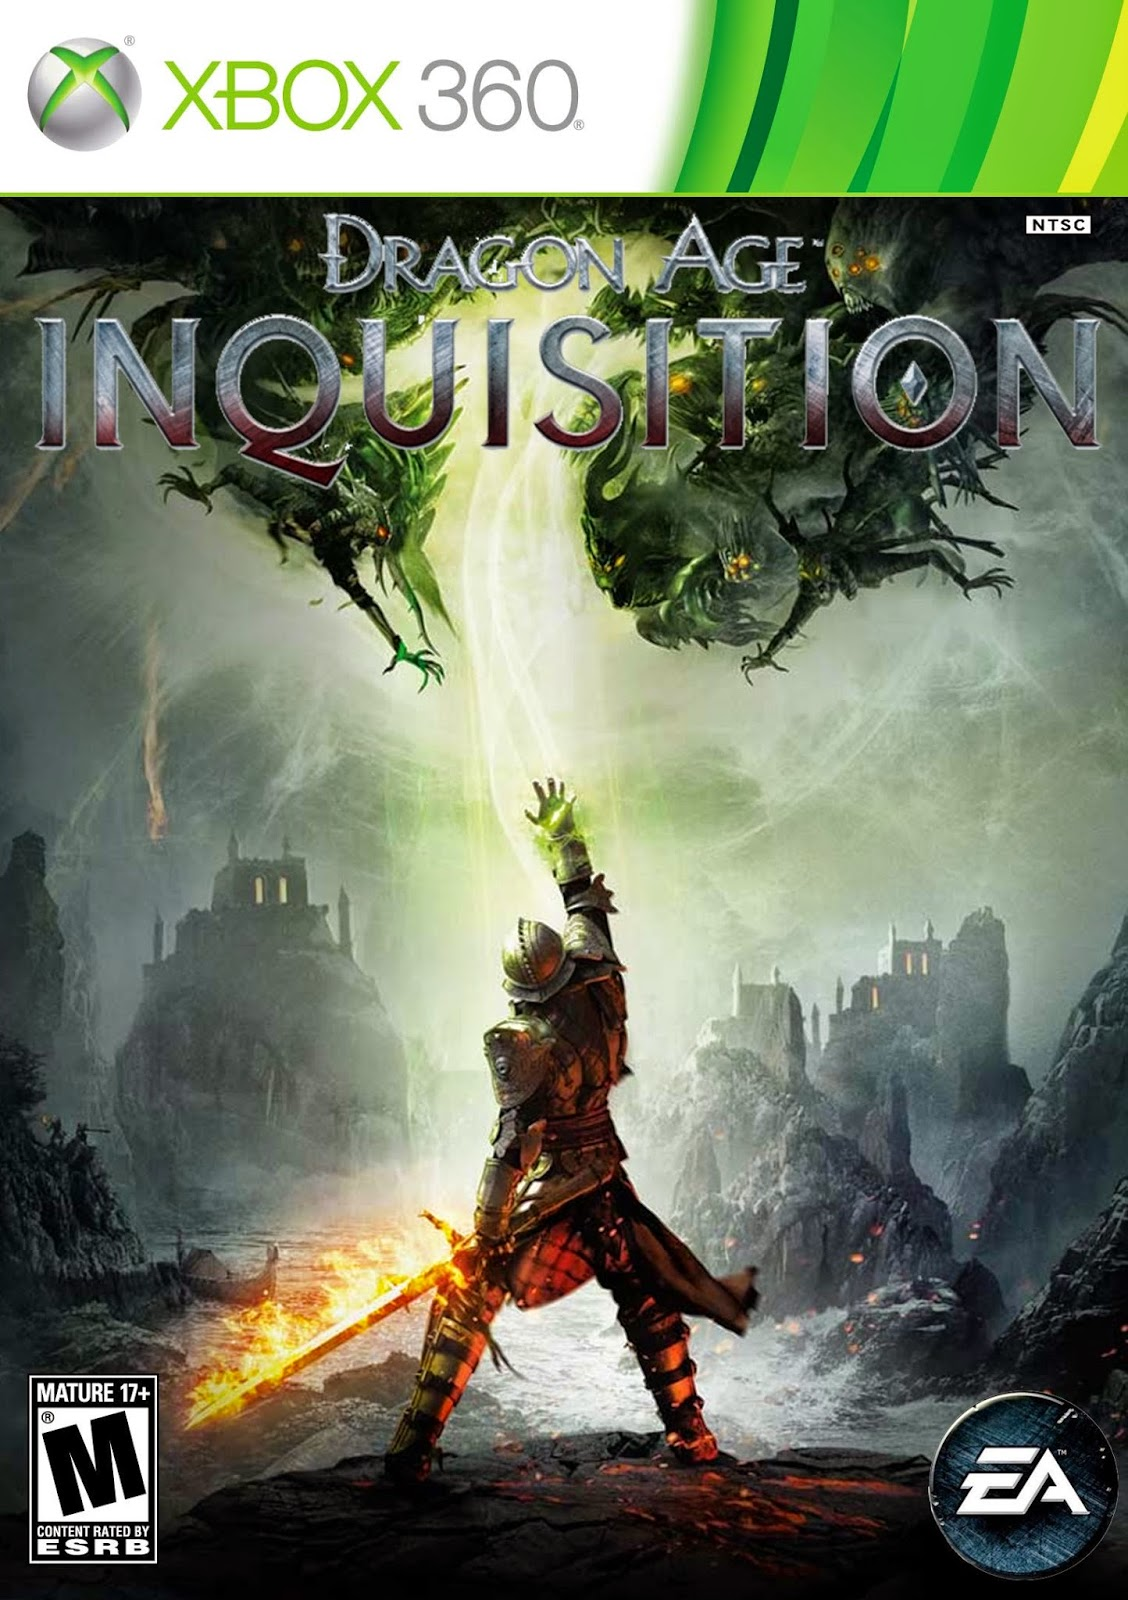 Dragon Age Inquisition XBOX 360 2014 LEGENDADO PT BR Torrent - Dragon Age Inquisition XBOX360